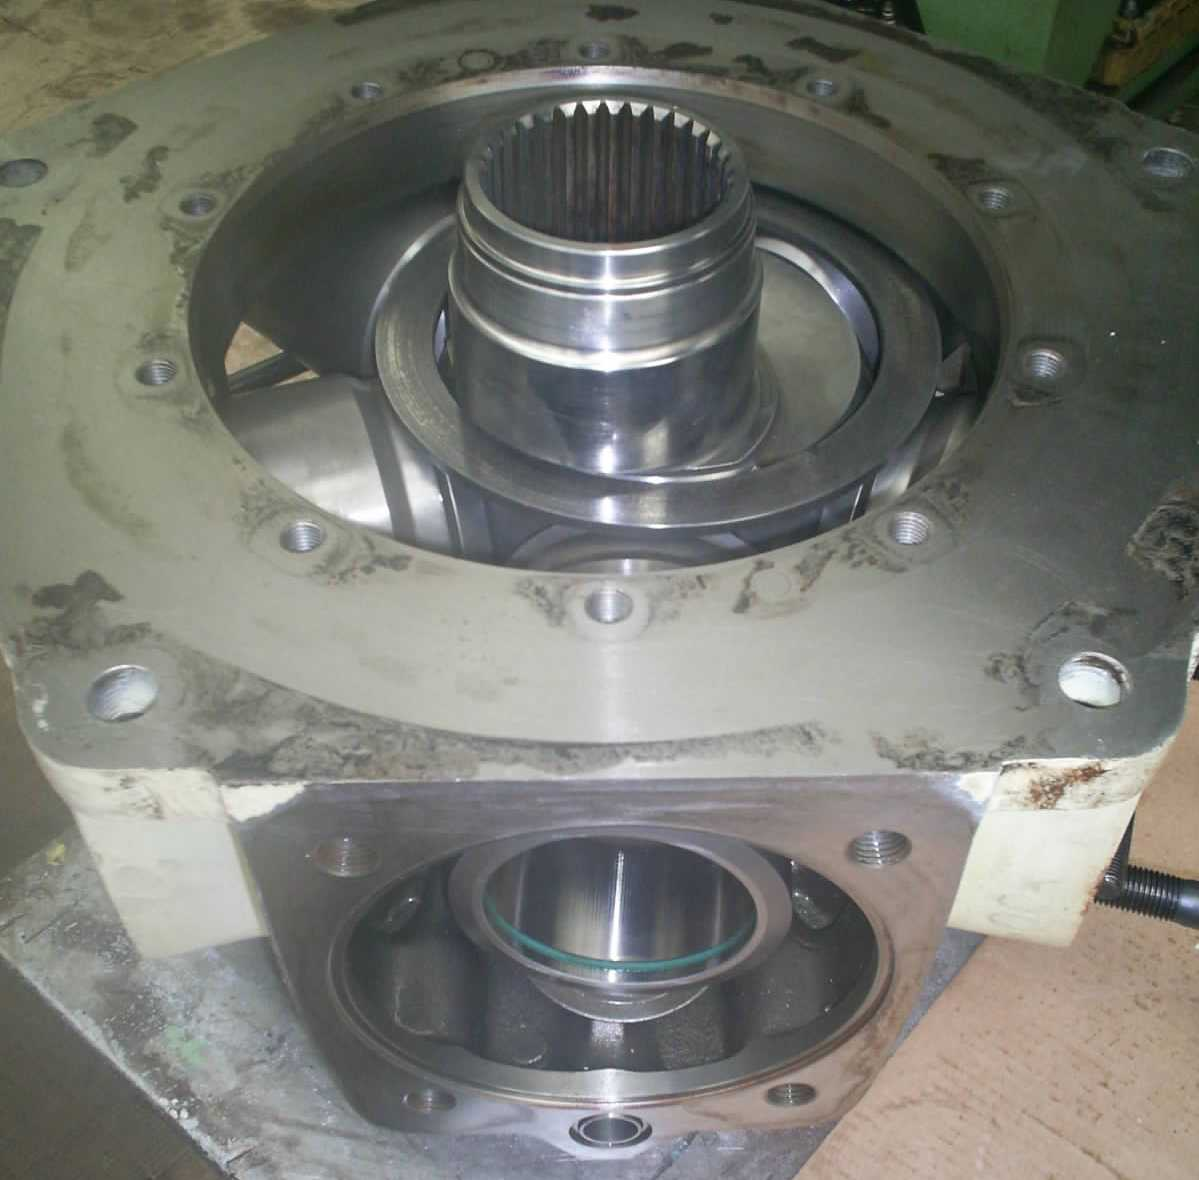 reparation_moteur_hydraulique_parker_denison_calzoni_MR4100L_piston_radiaux_presse_injection_plastique